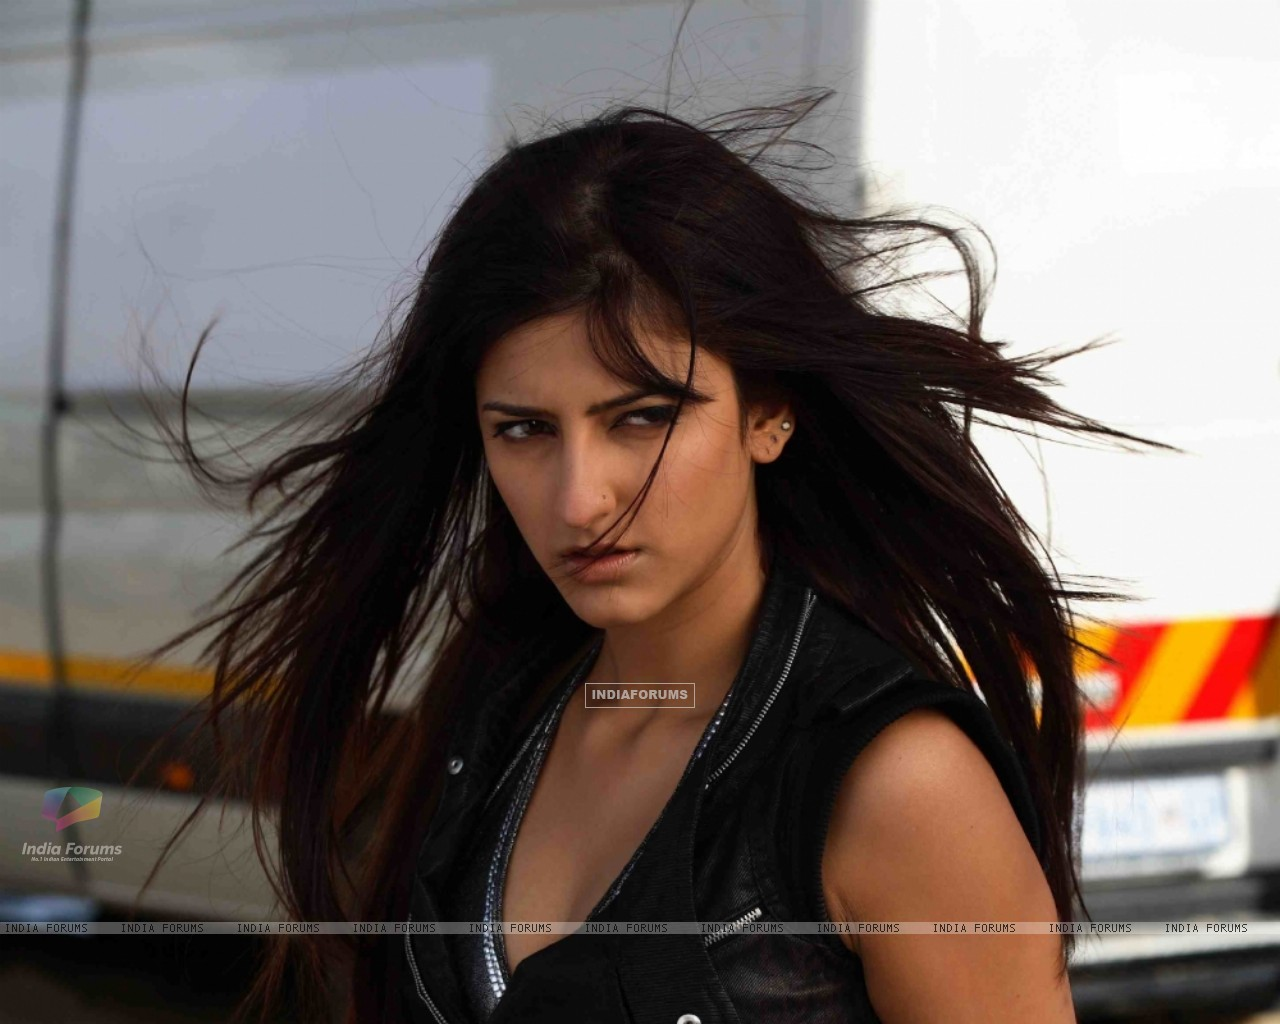 shruti hassan looking angry - wallpaper (size:1280x1024)